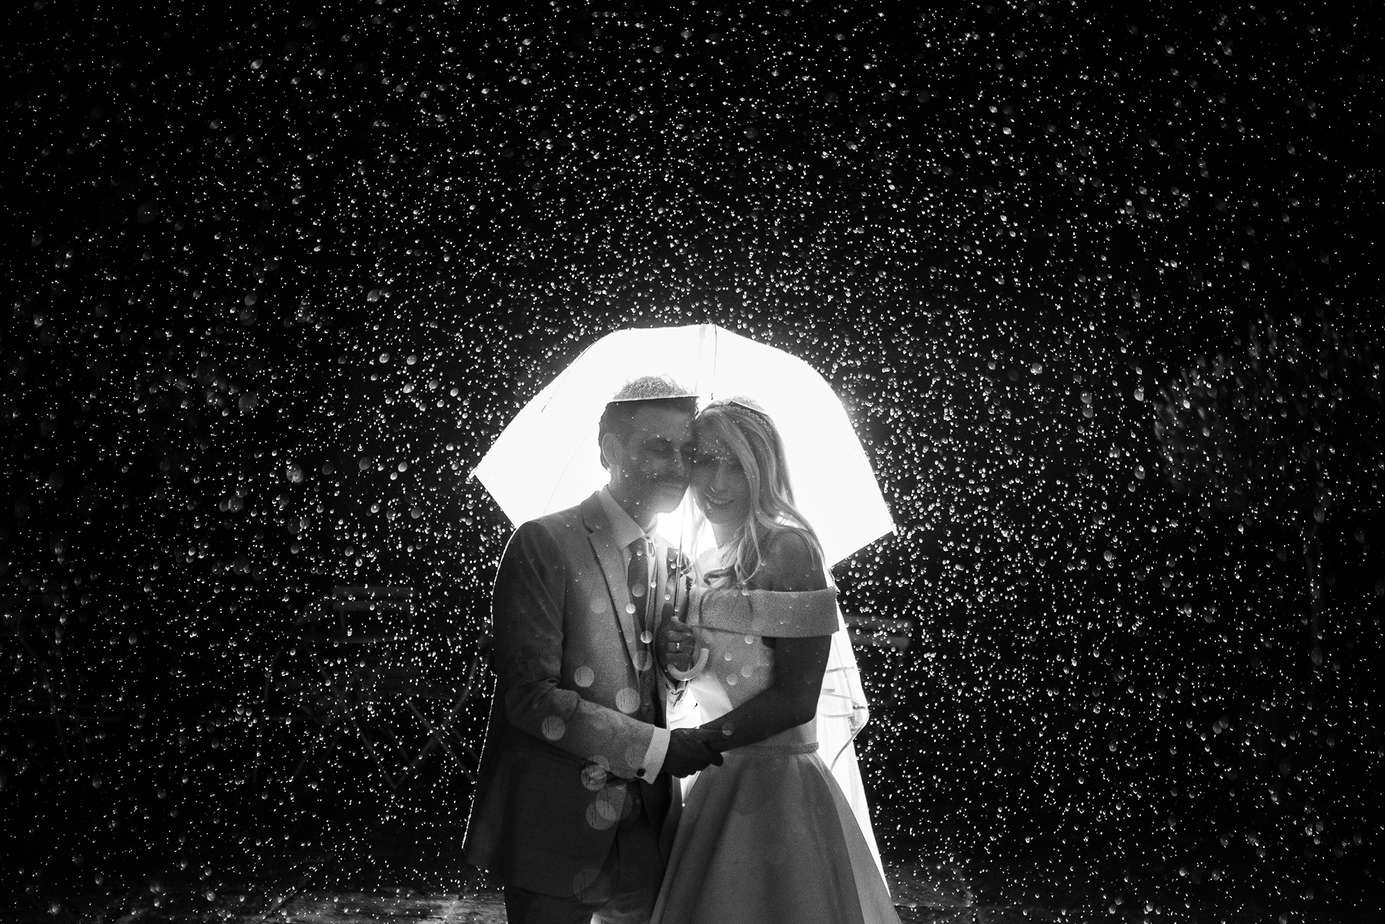 married couple standing under umbrella in the rain at night